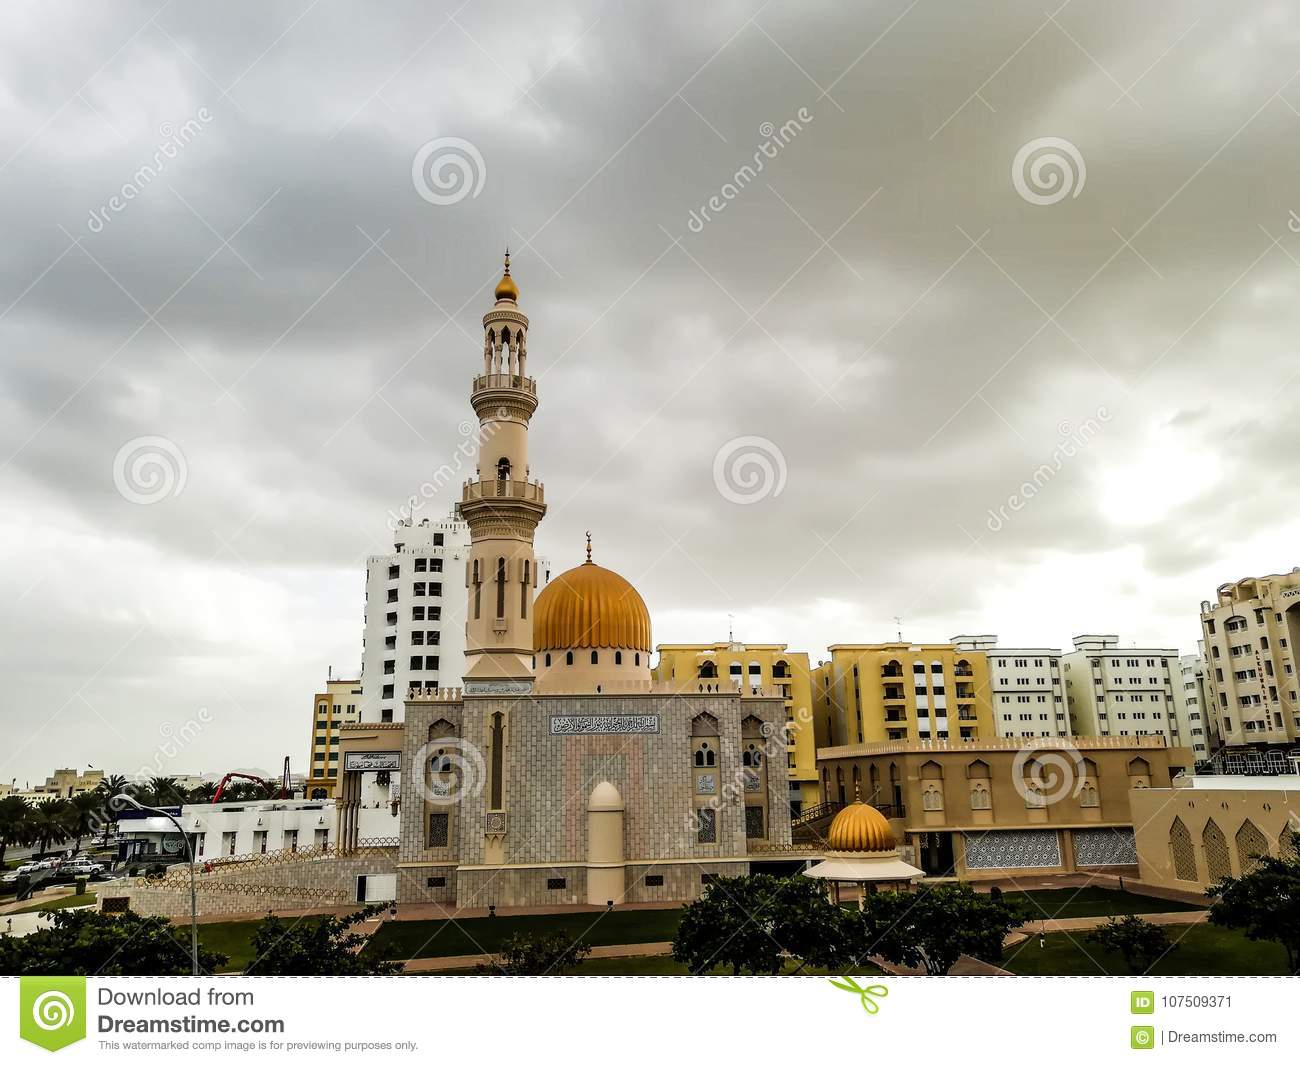 Al Khuwair Zawawi Mosque right view in front of Muscat main road